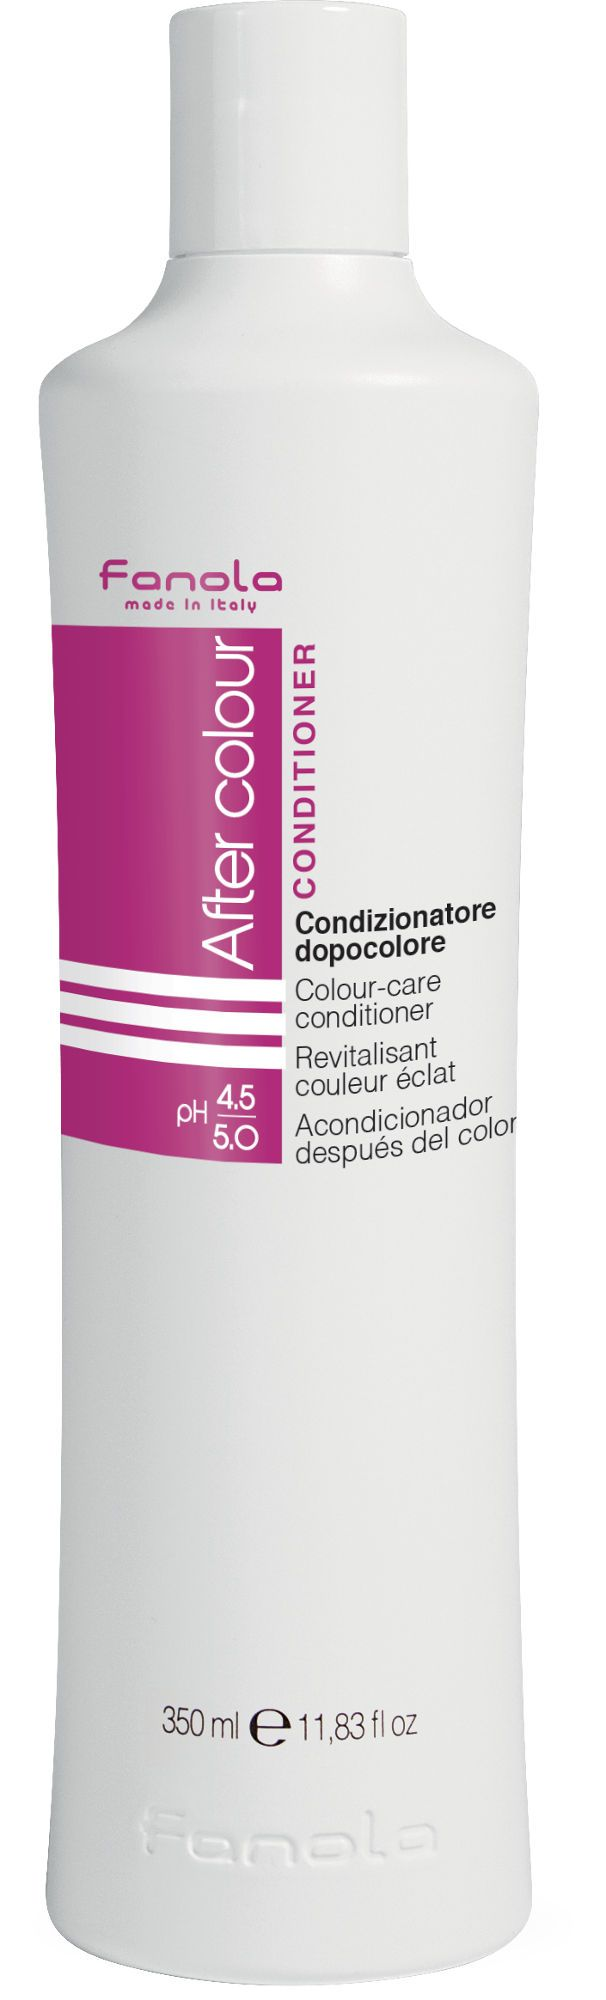 Fanola After Colour Care Conditioner Hair Conditioners Fanola 350 ml